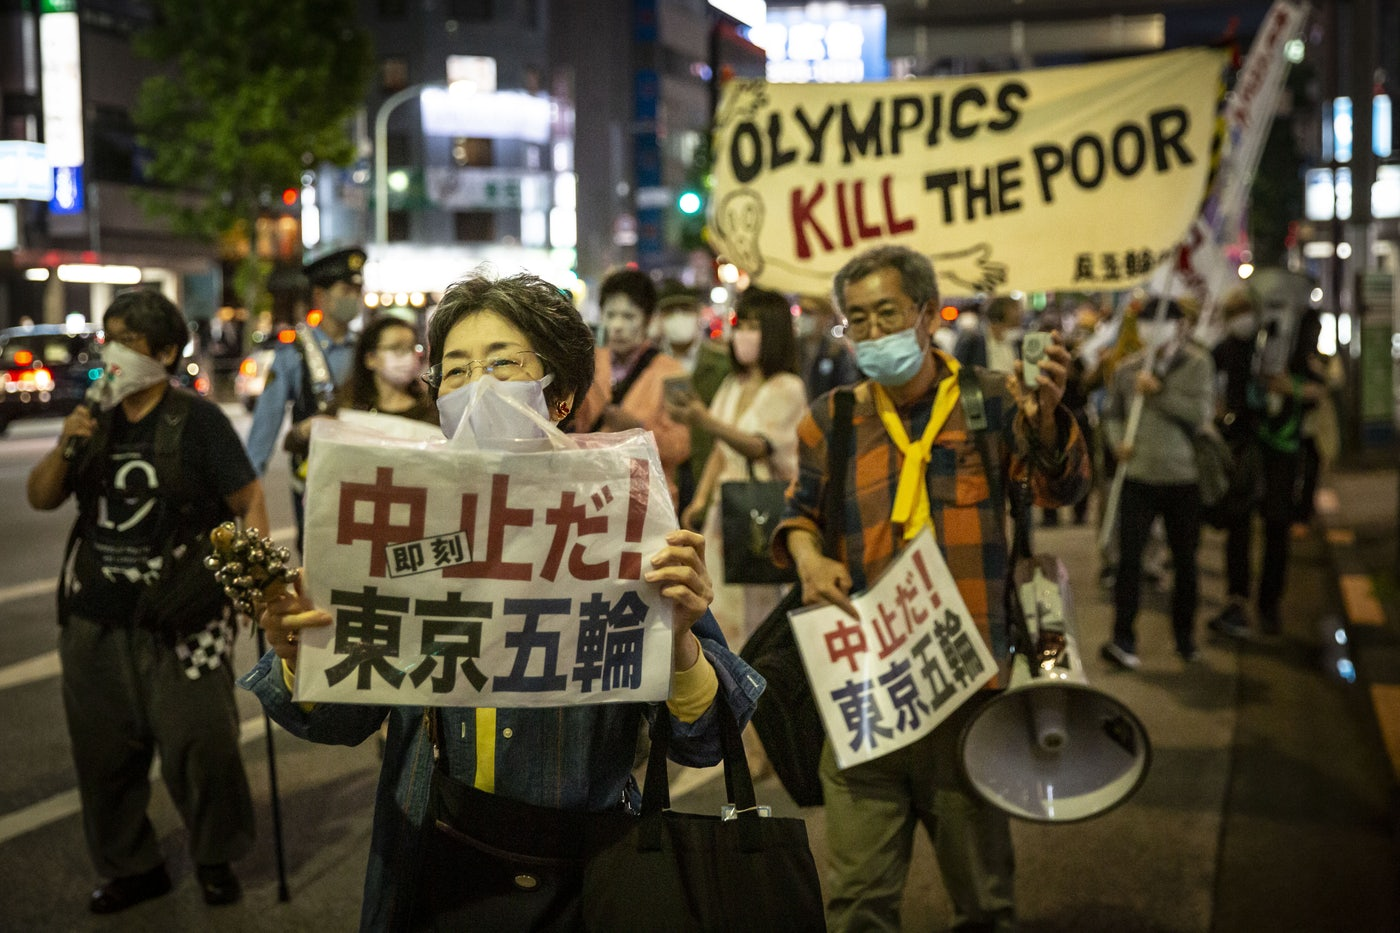 A protest against the Tokyo Olympics in Japan.